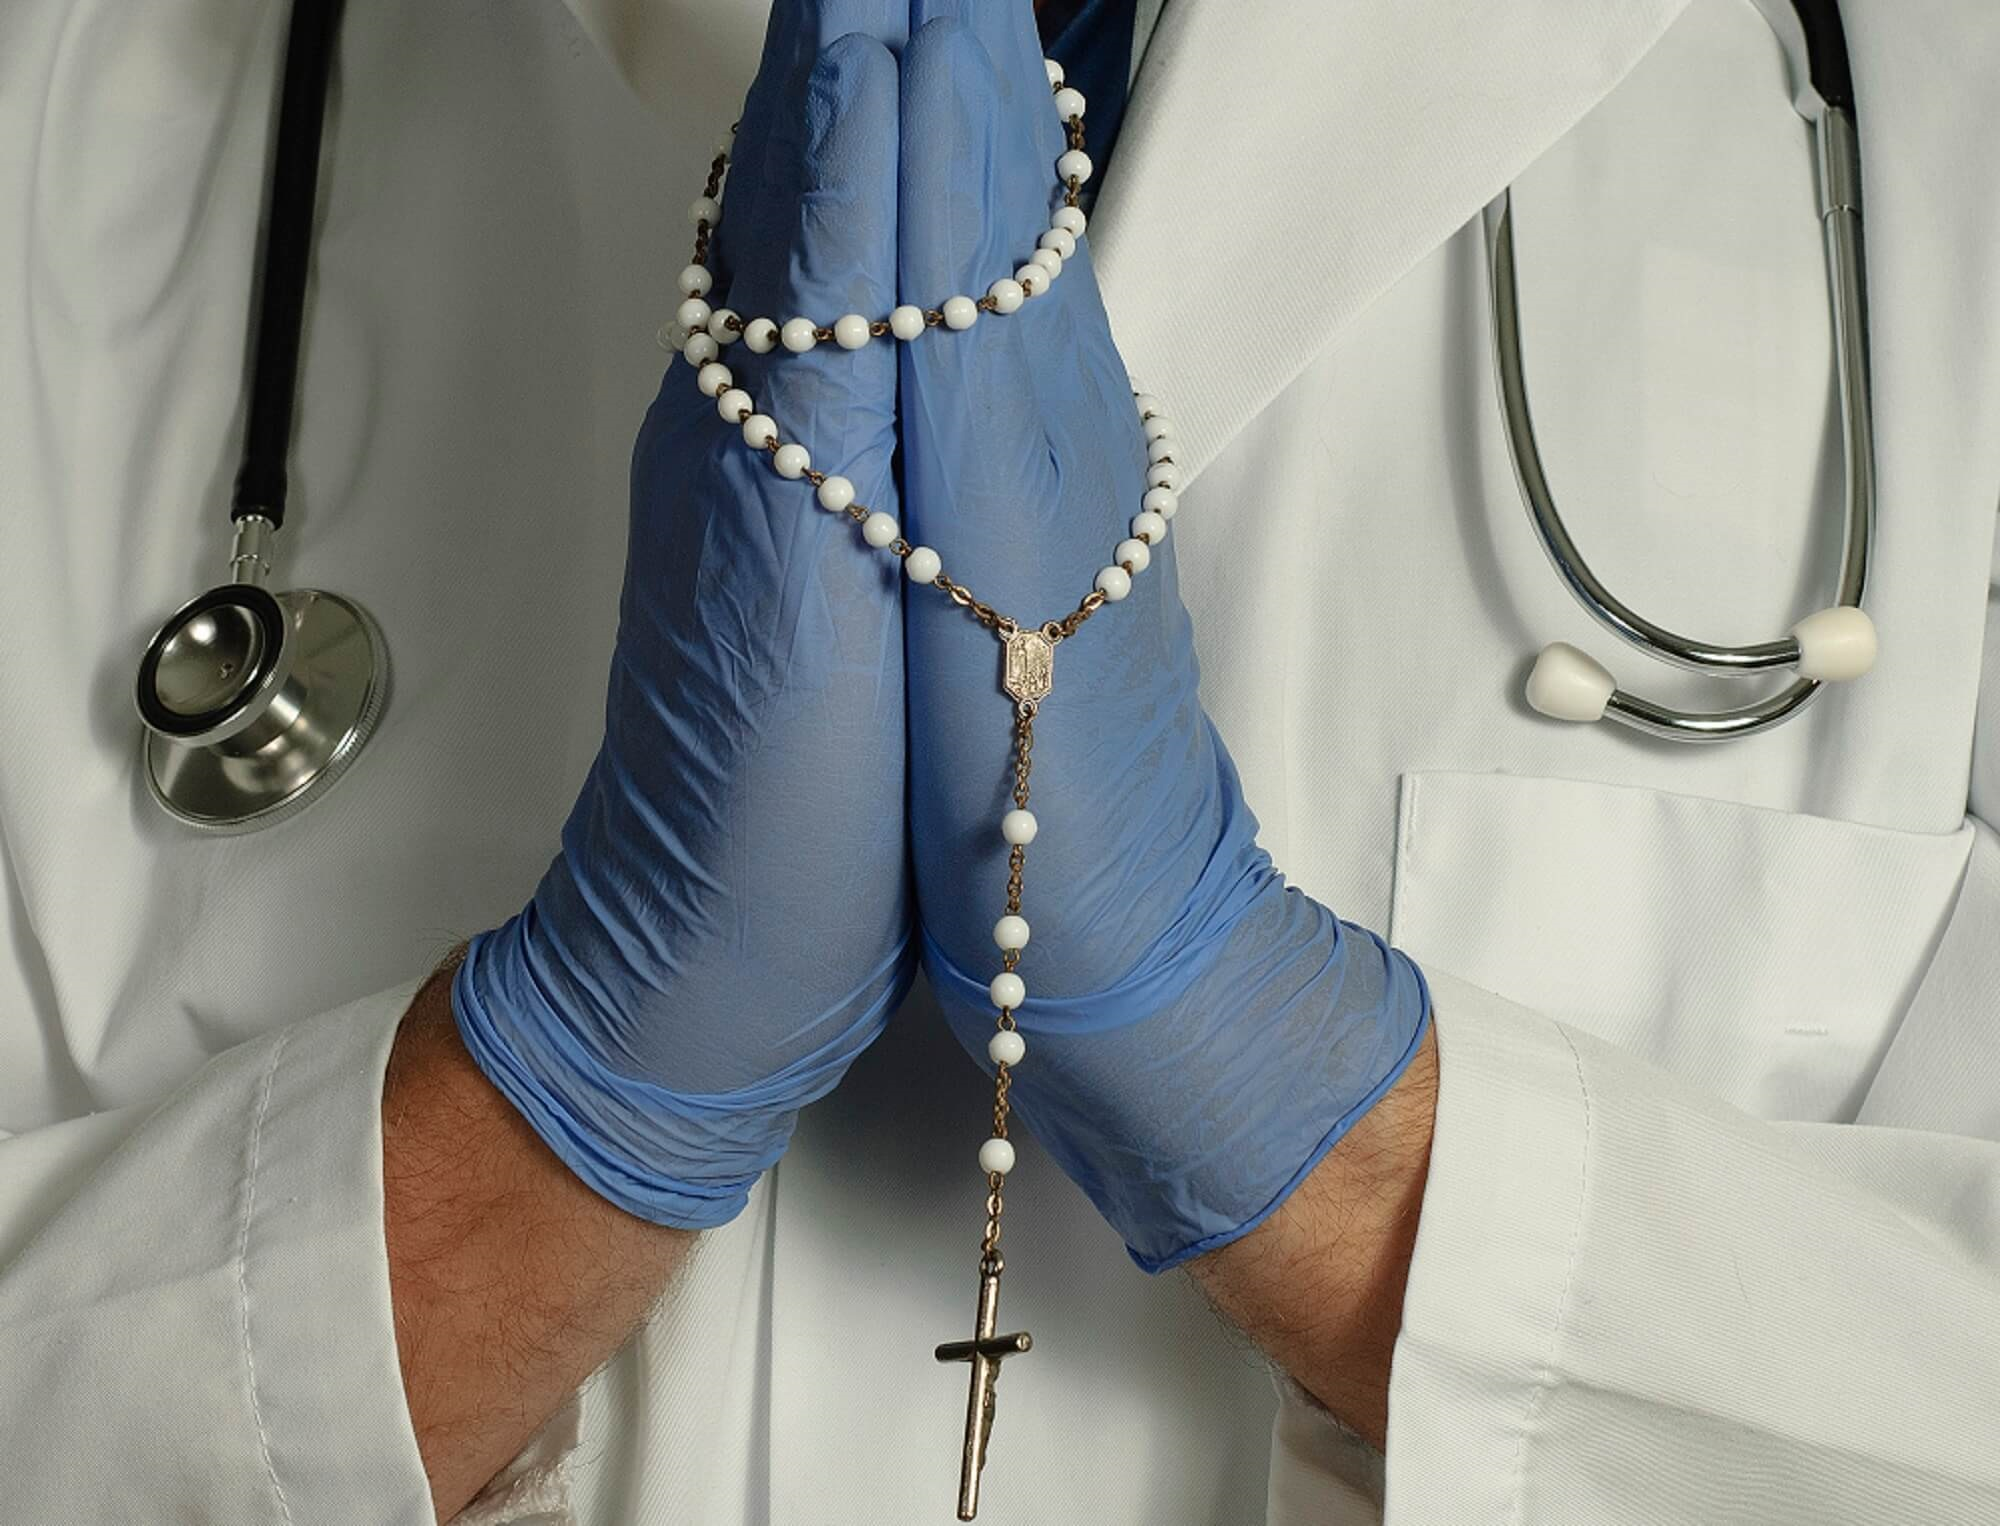 Opinion: Does Religion Have a Place in Medicine ...